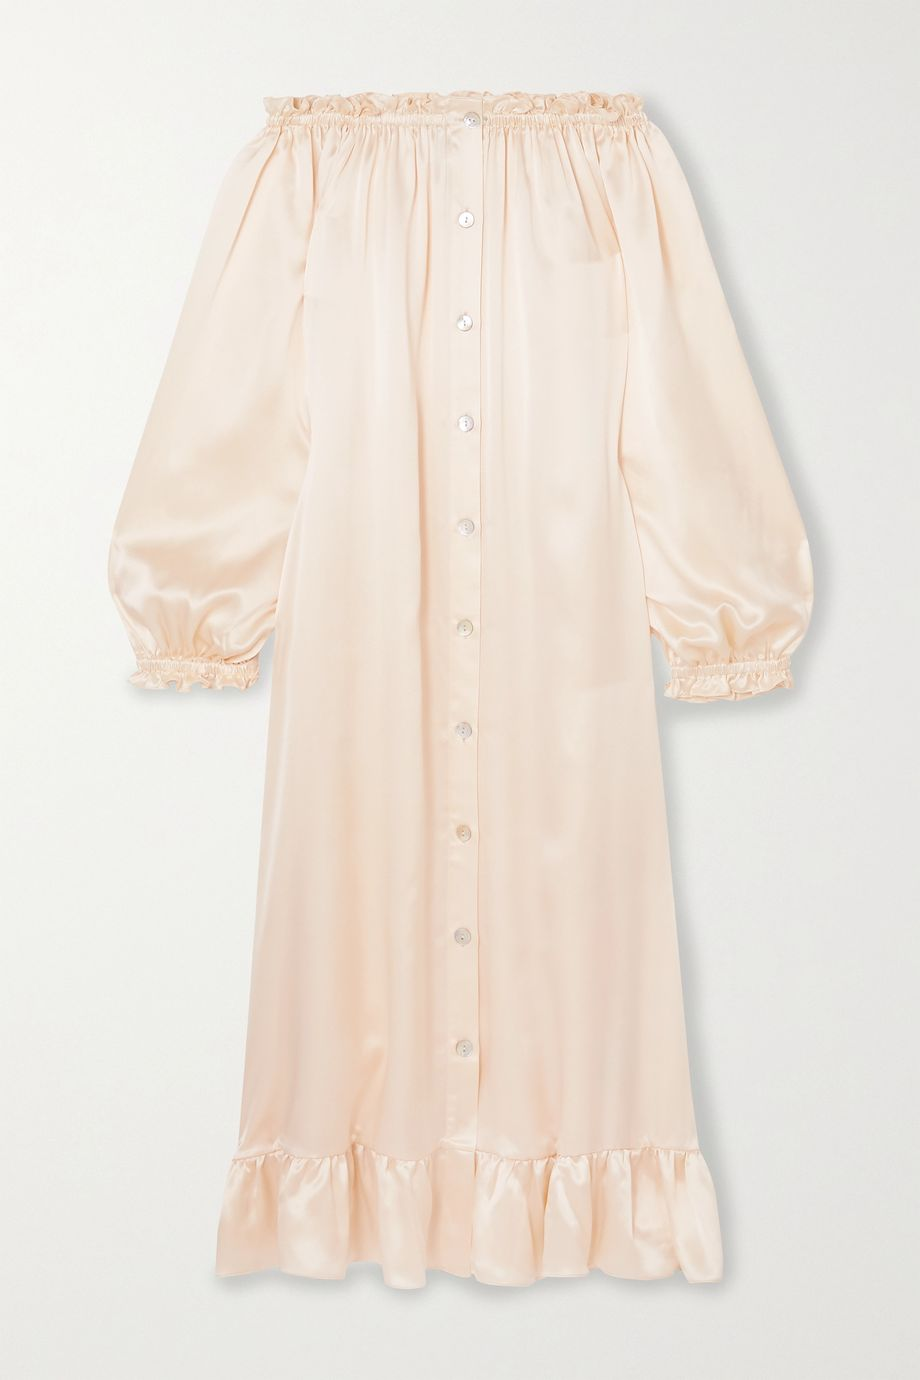 Sleeper Love Me Tender off-the-shoulder ruffled silk-satin midi dress